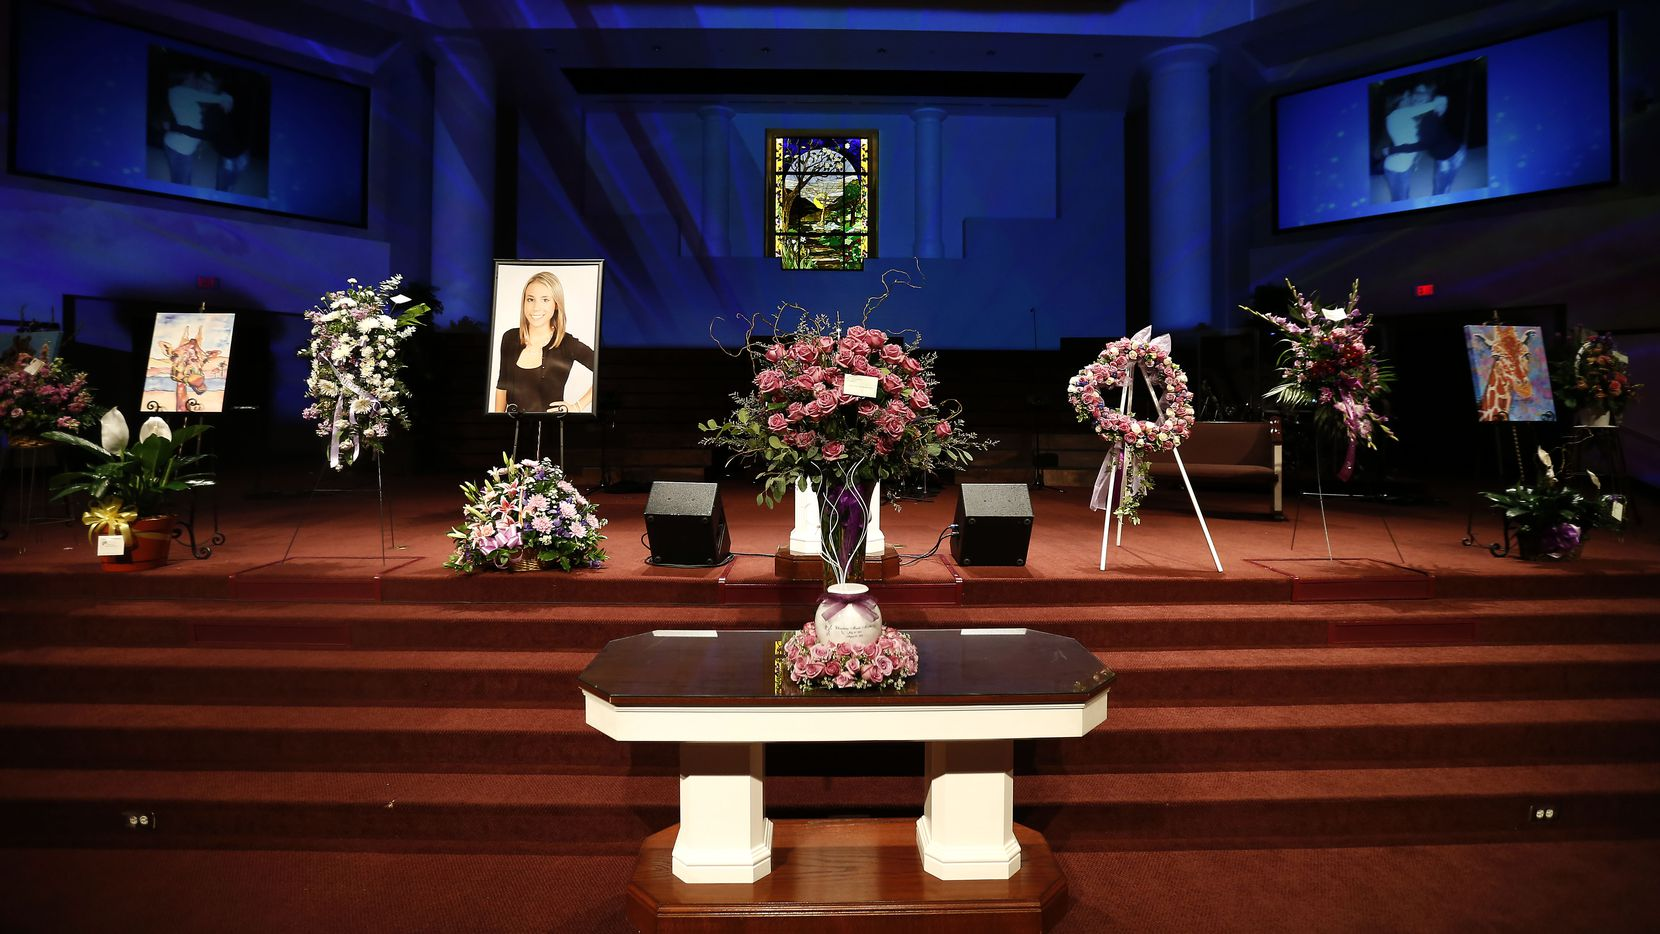 An urn containing Christina Morris' ashes, photos and flowers are seen during a memorial service at First Baptist Church in Allen on Saturday, April 21, 2018. (Jae S. Lee/The Dallas Morning News)